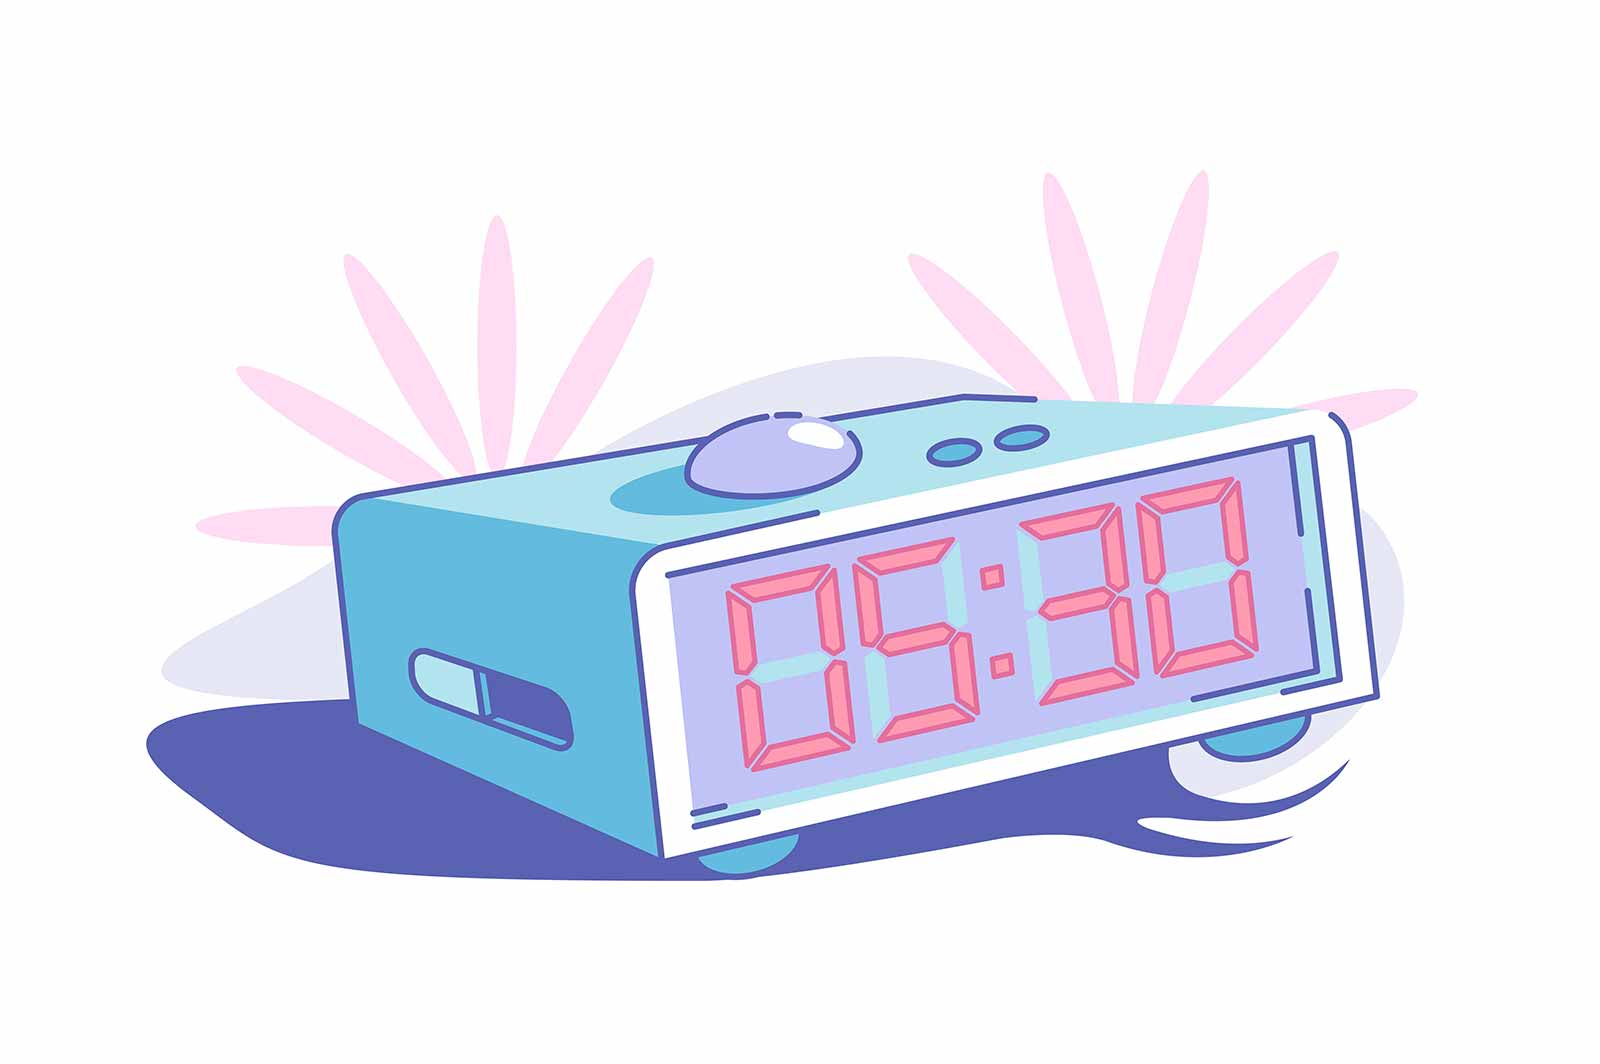 Early morning wake up vector illustration. Alarm set on half past five flat style. Ringing clock. Red numbers on screen. Countdown time concept. Isolated on white background